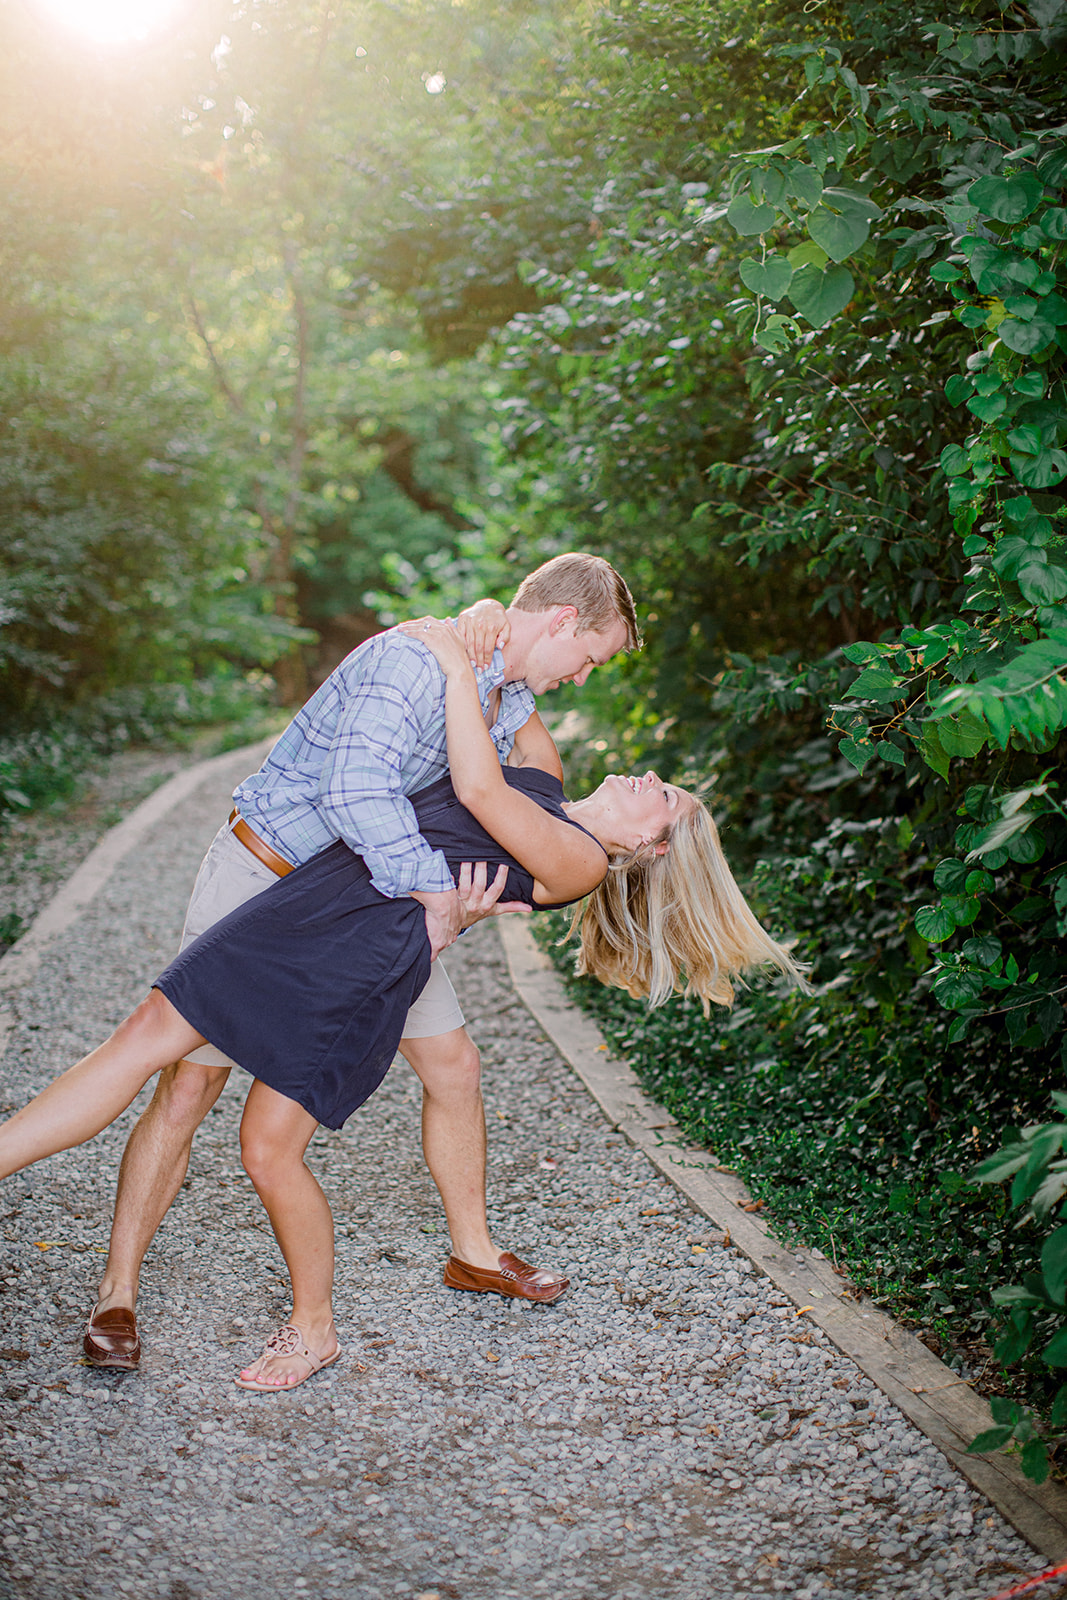 Downtown Franklin Tennessee engagement session by Ashton Brooke Photography featured on Nashville Bride Guide